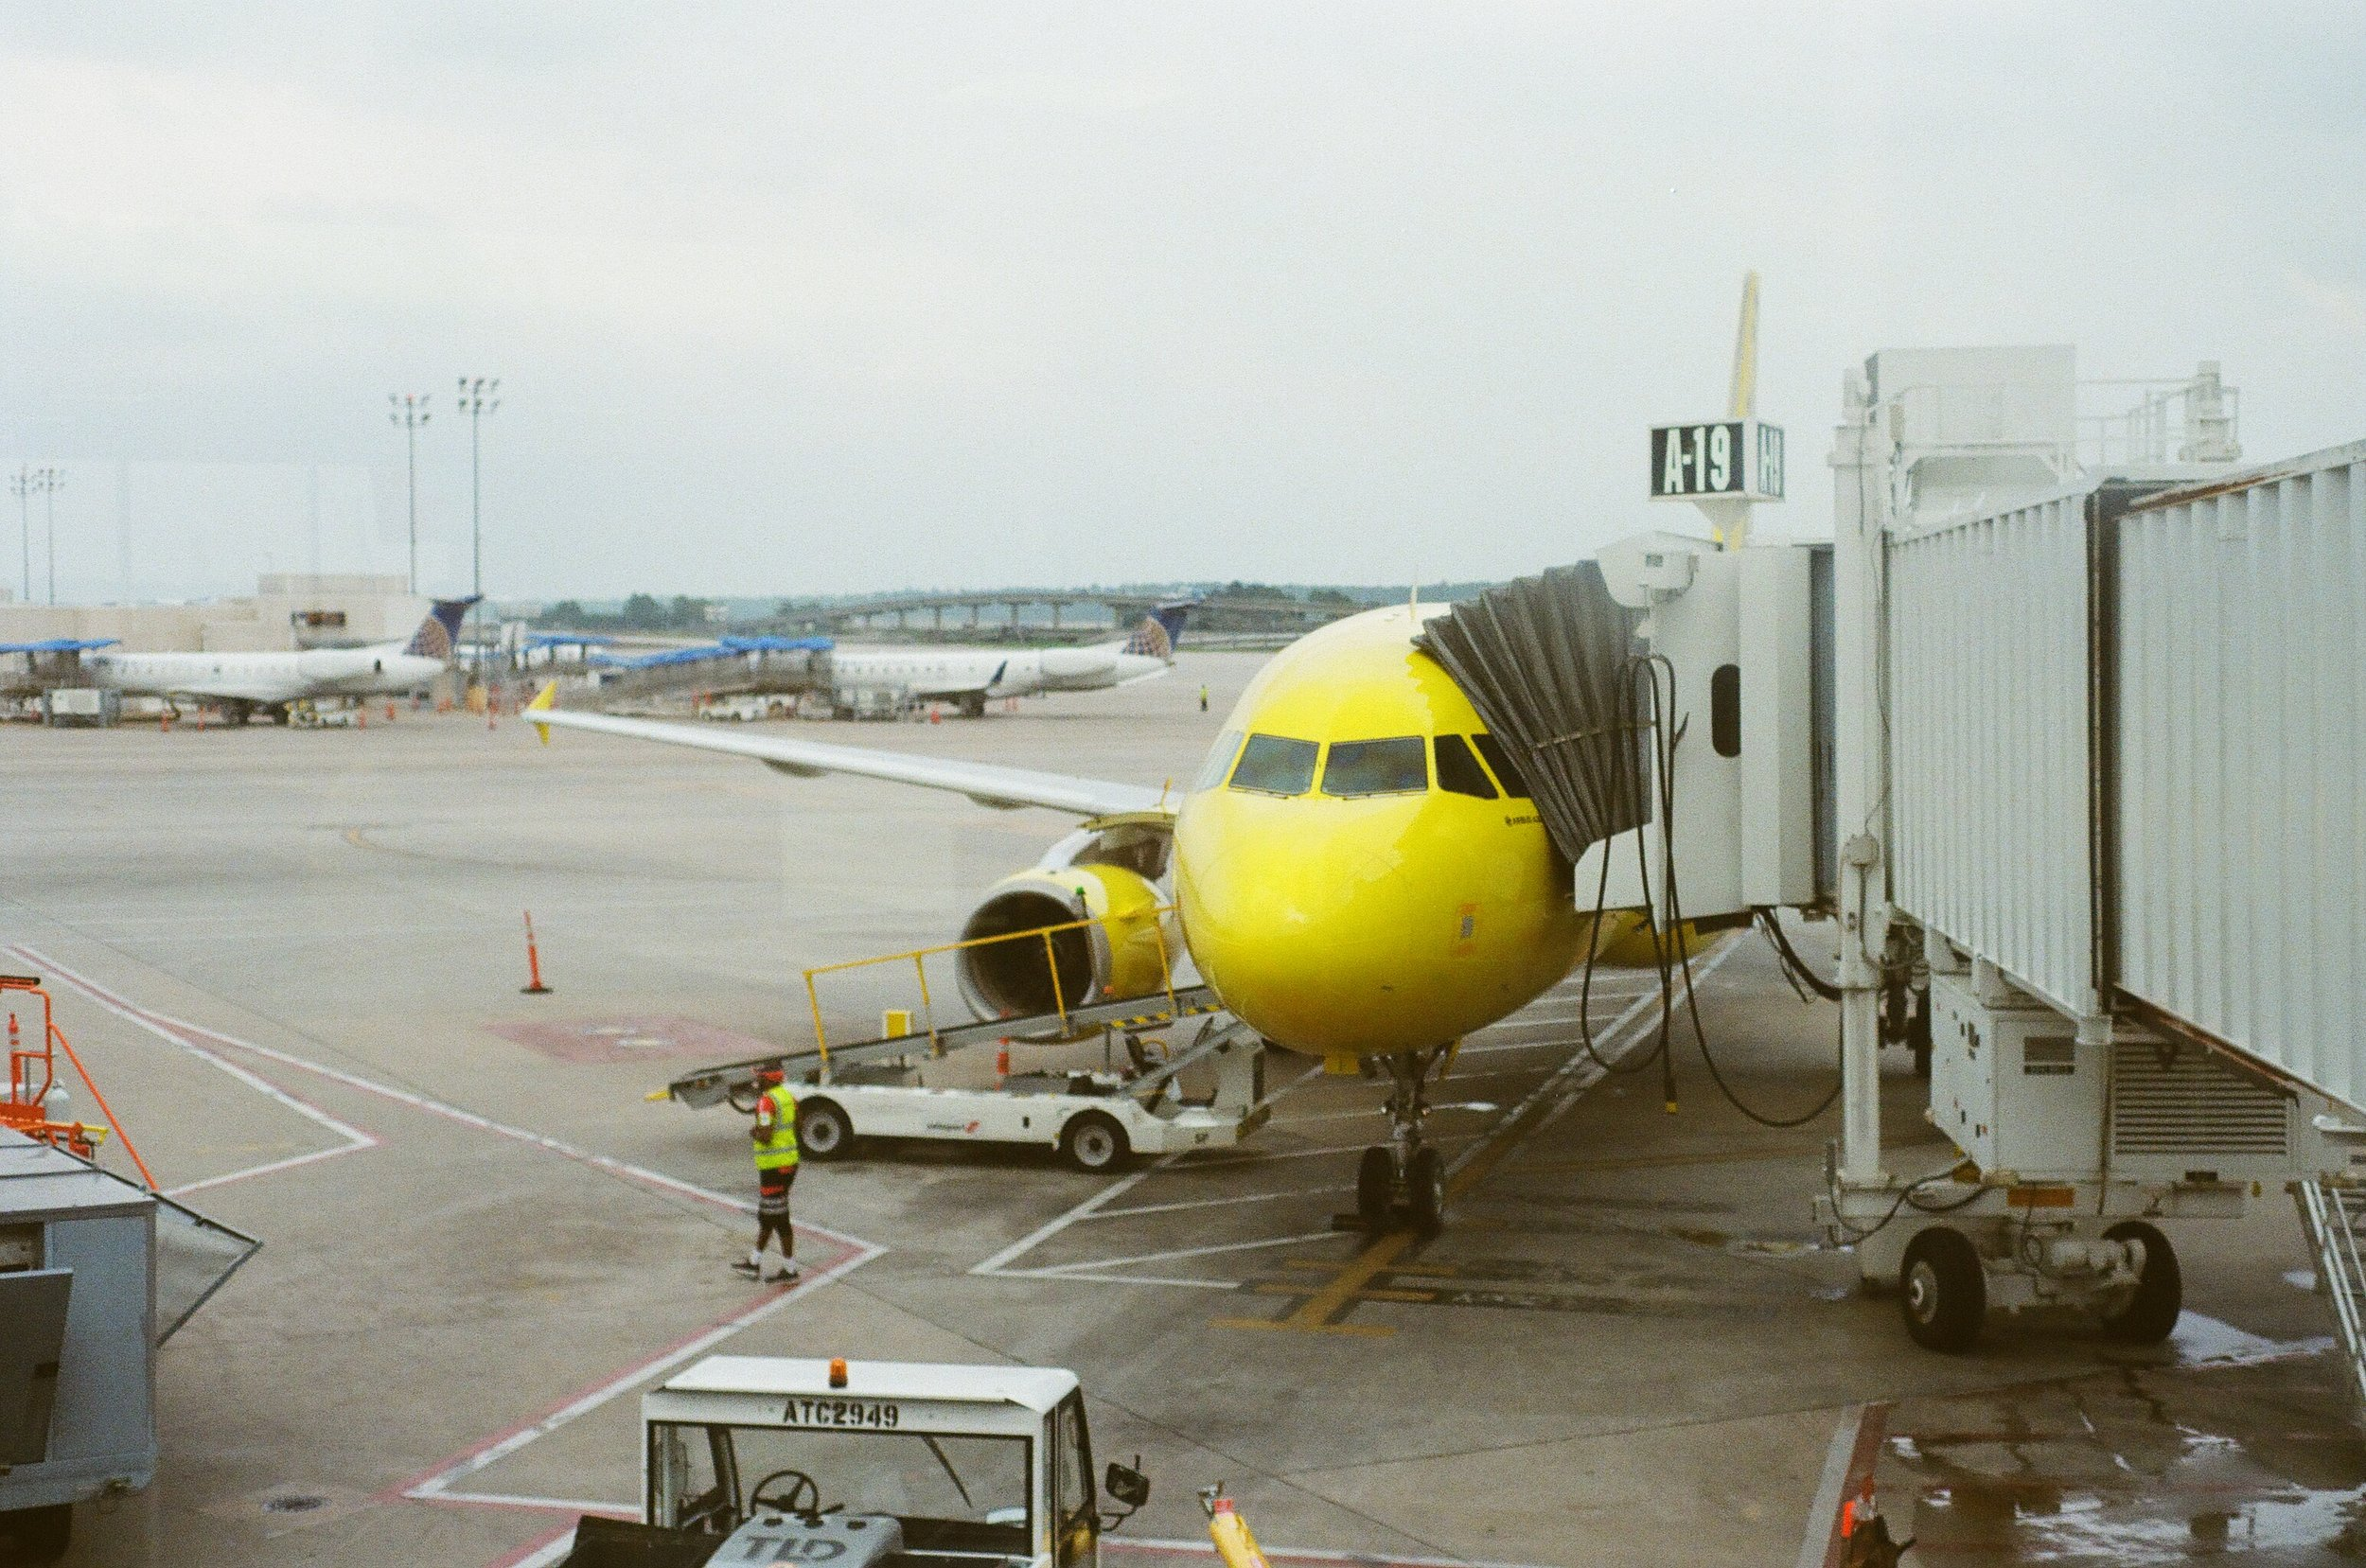 The first yellow chariot I rode